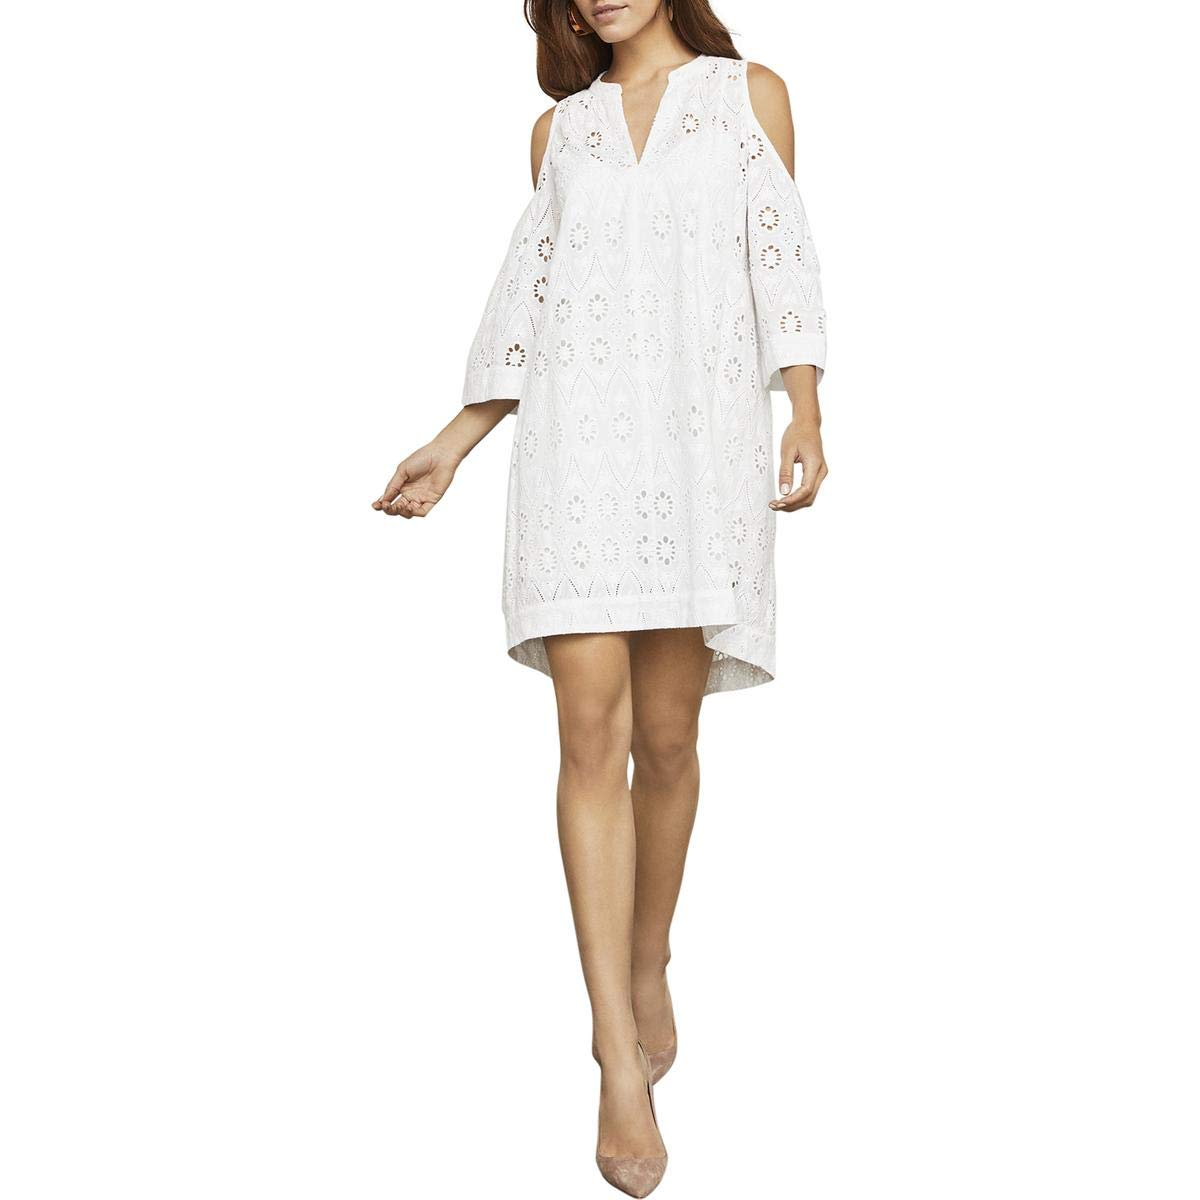 White BCBG Max Azria Womens Regan Cold Shoulder Floral Mini Dress